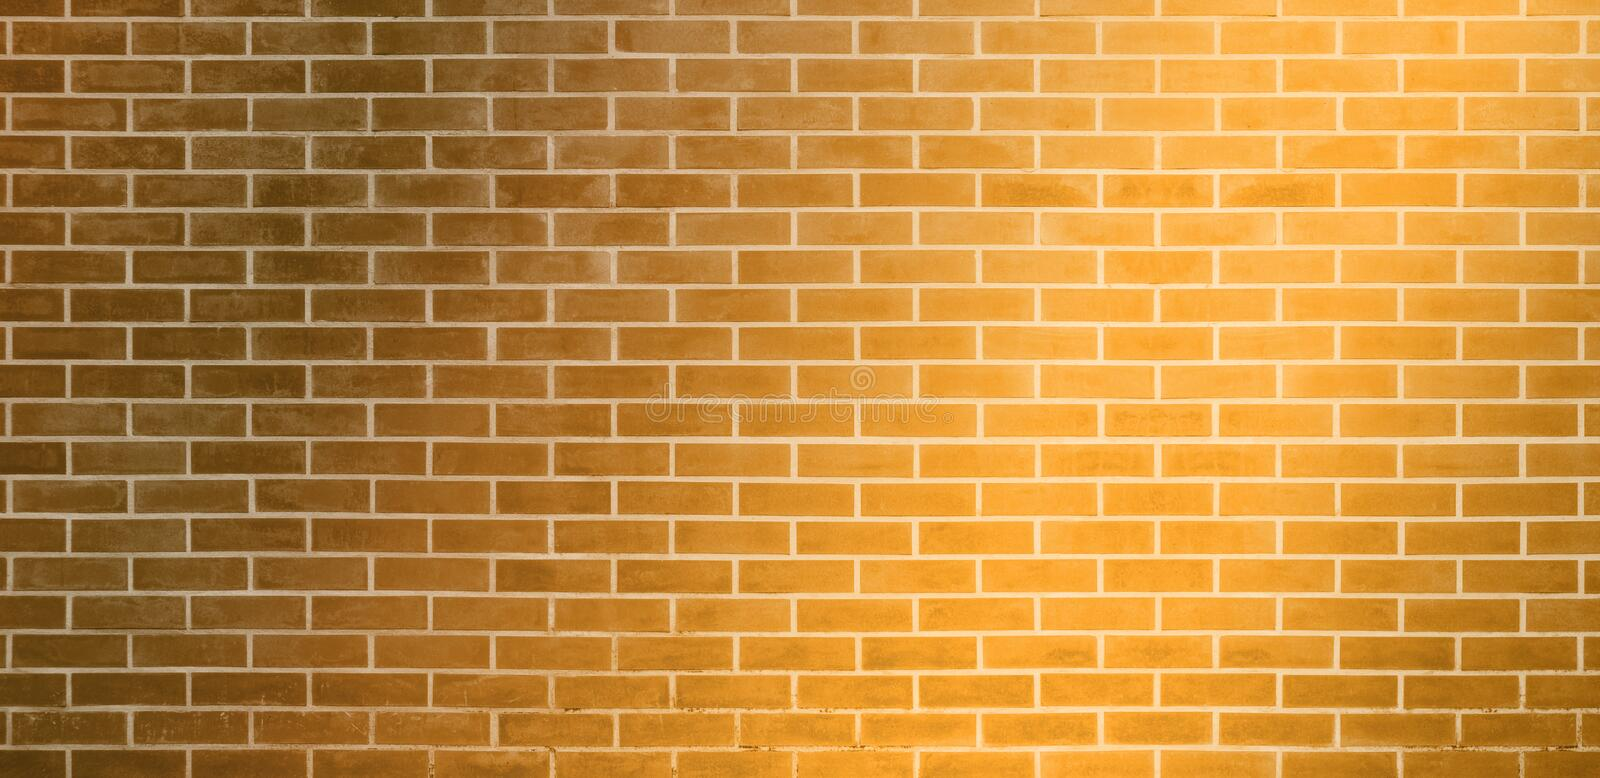 Gold And Red Grunge Texture Stock Illustration